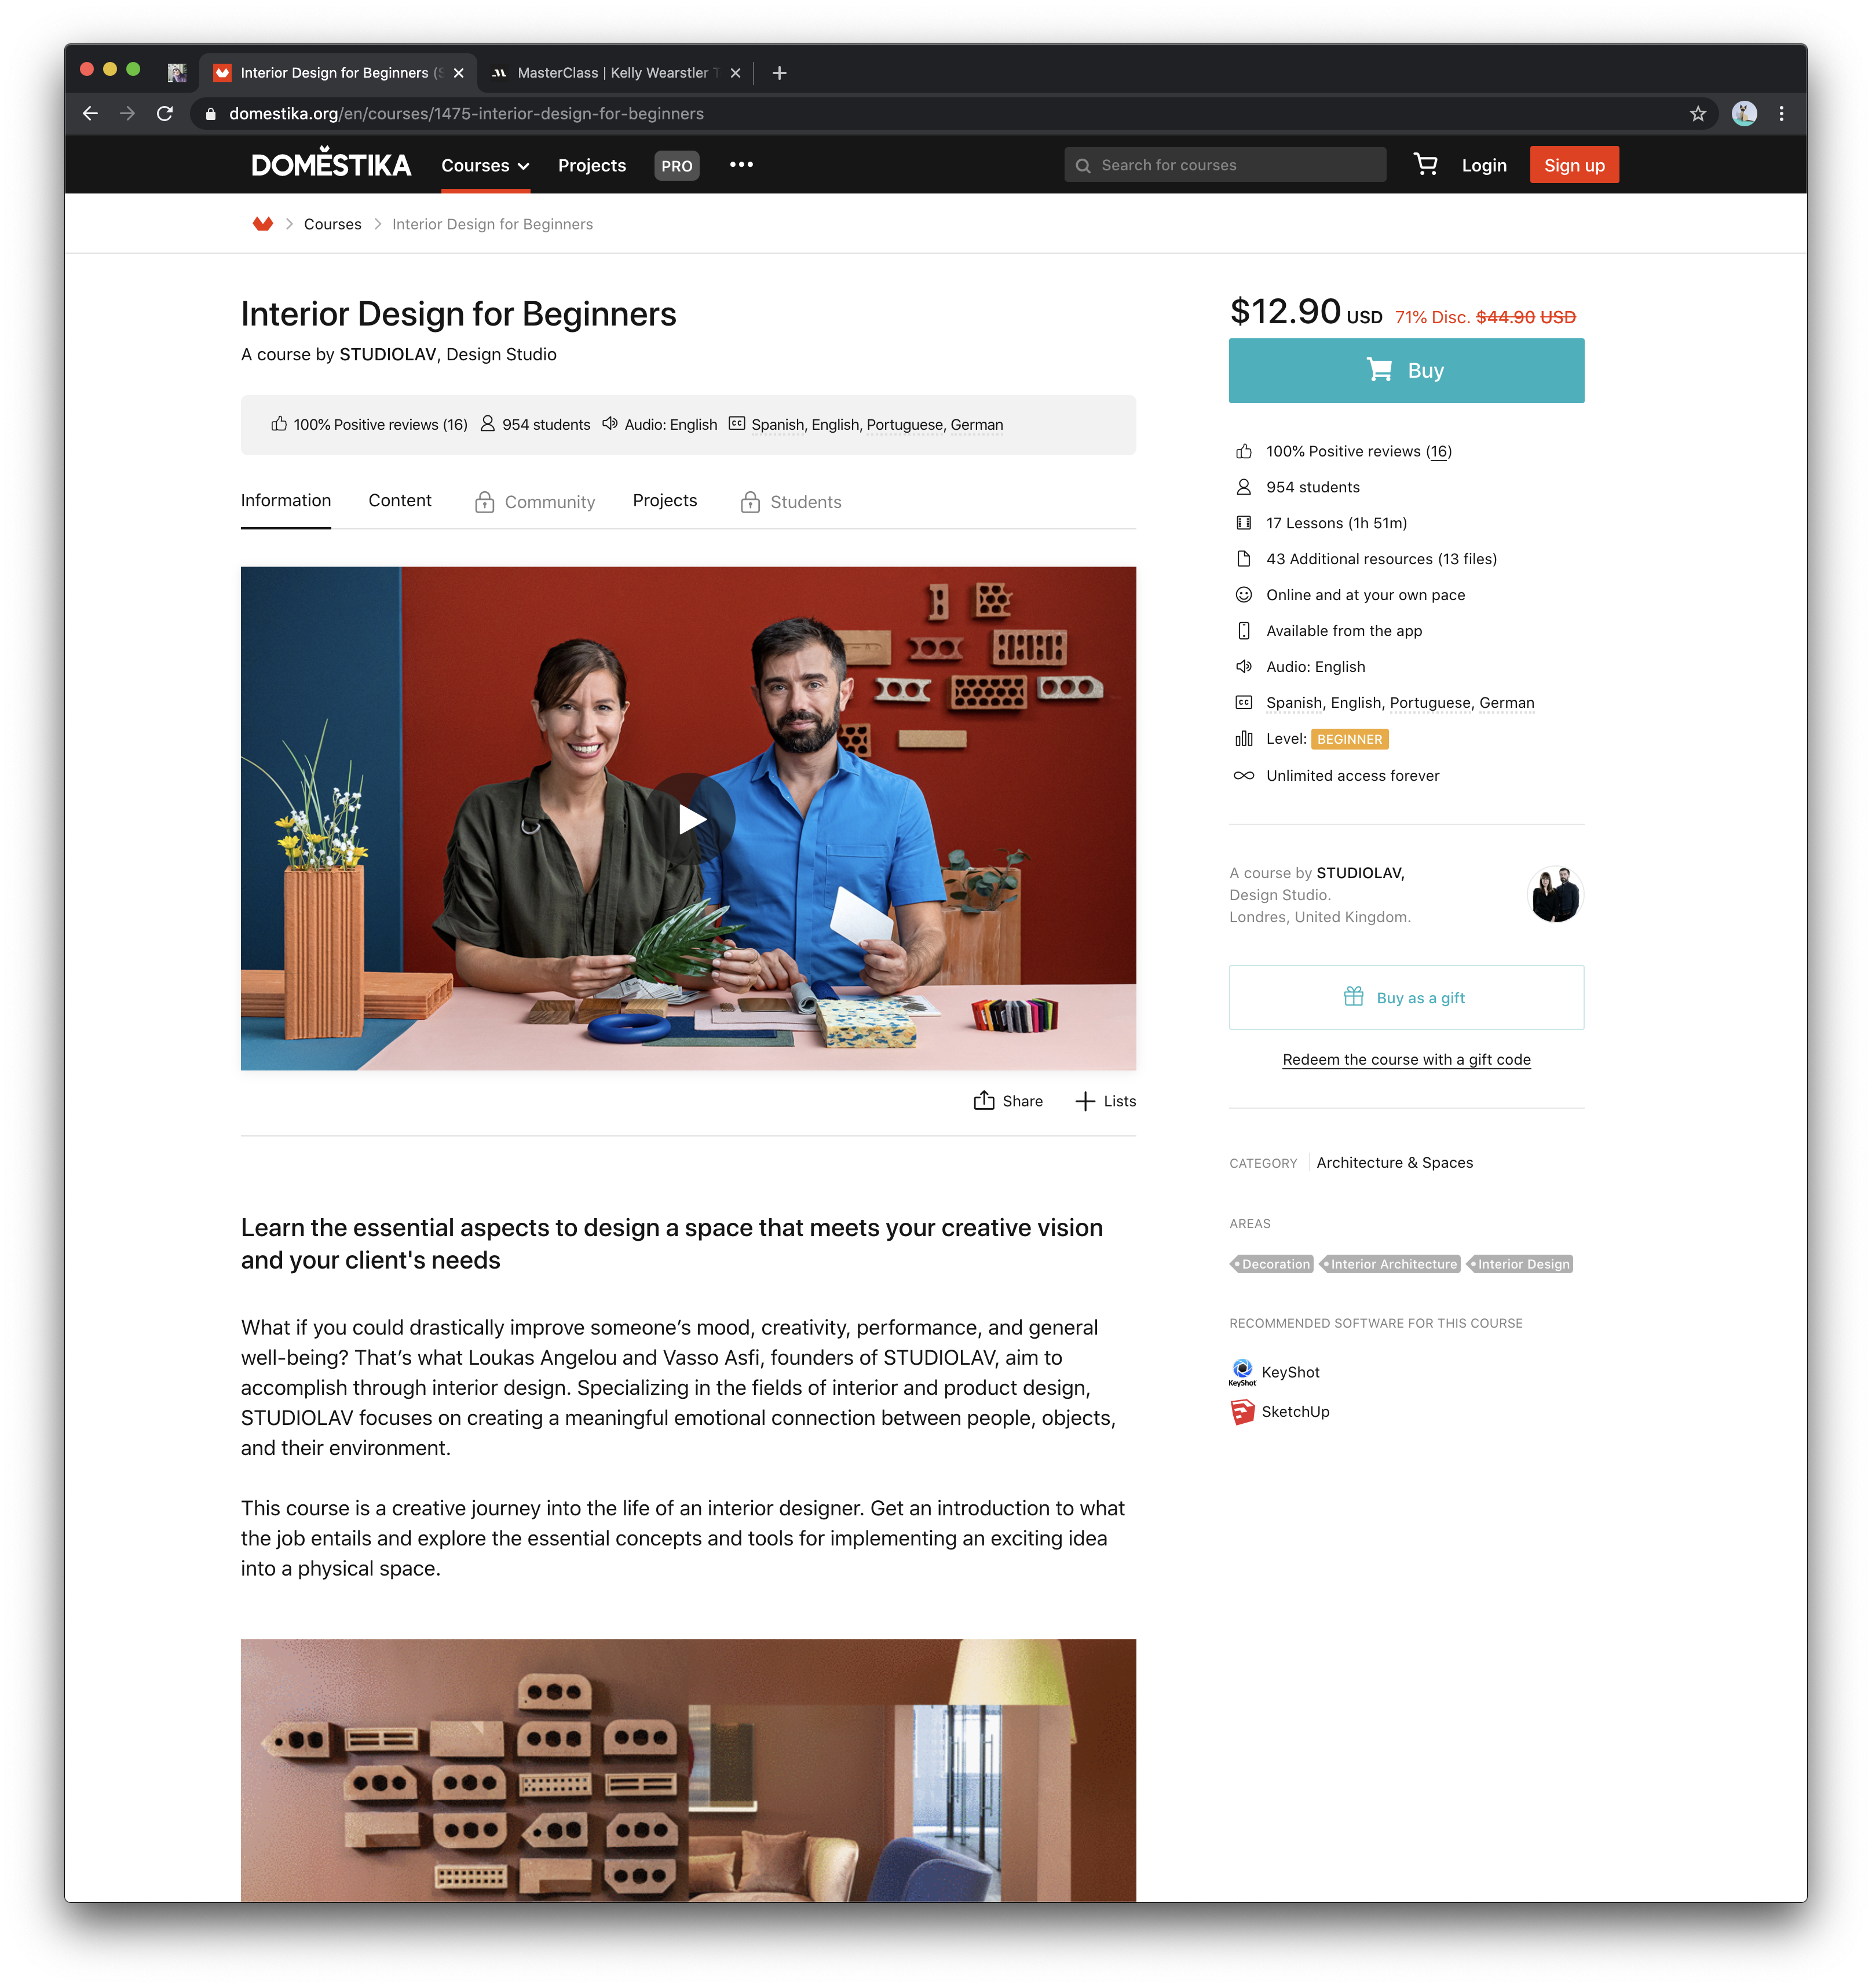 Screenshot of the Domestika Interior Design Course page